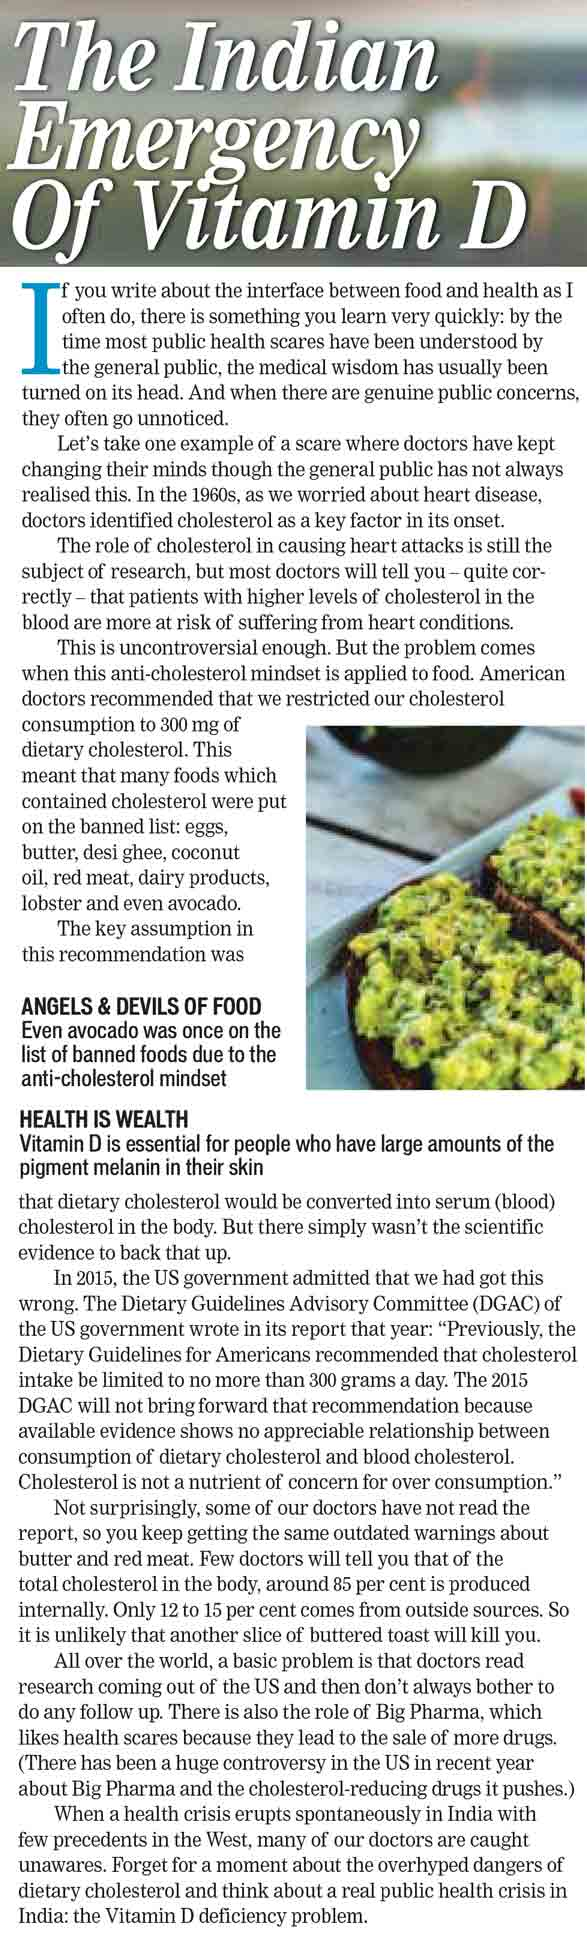 The Indian emergency of vitamin D